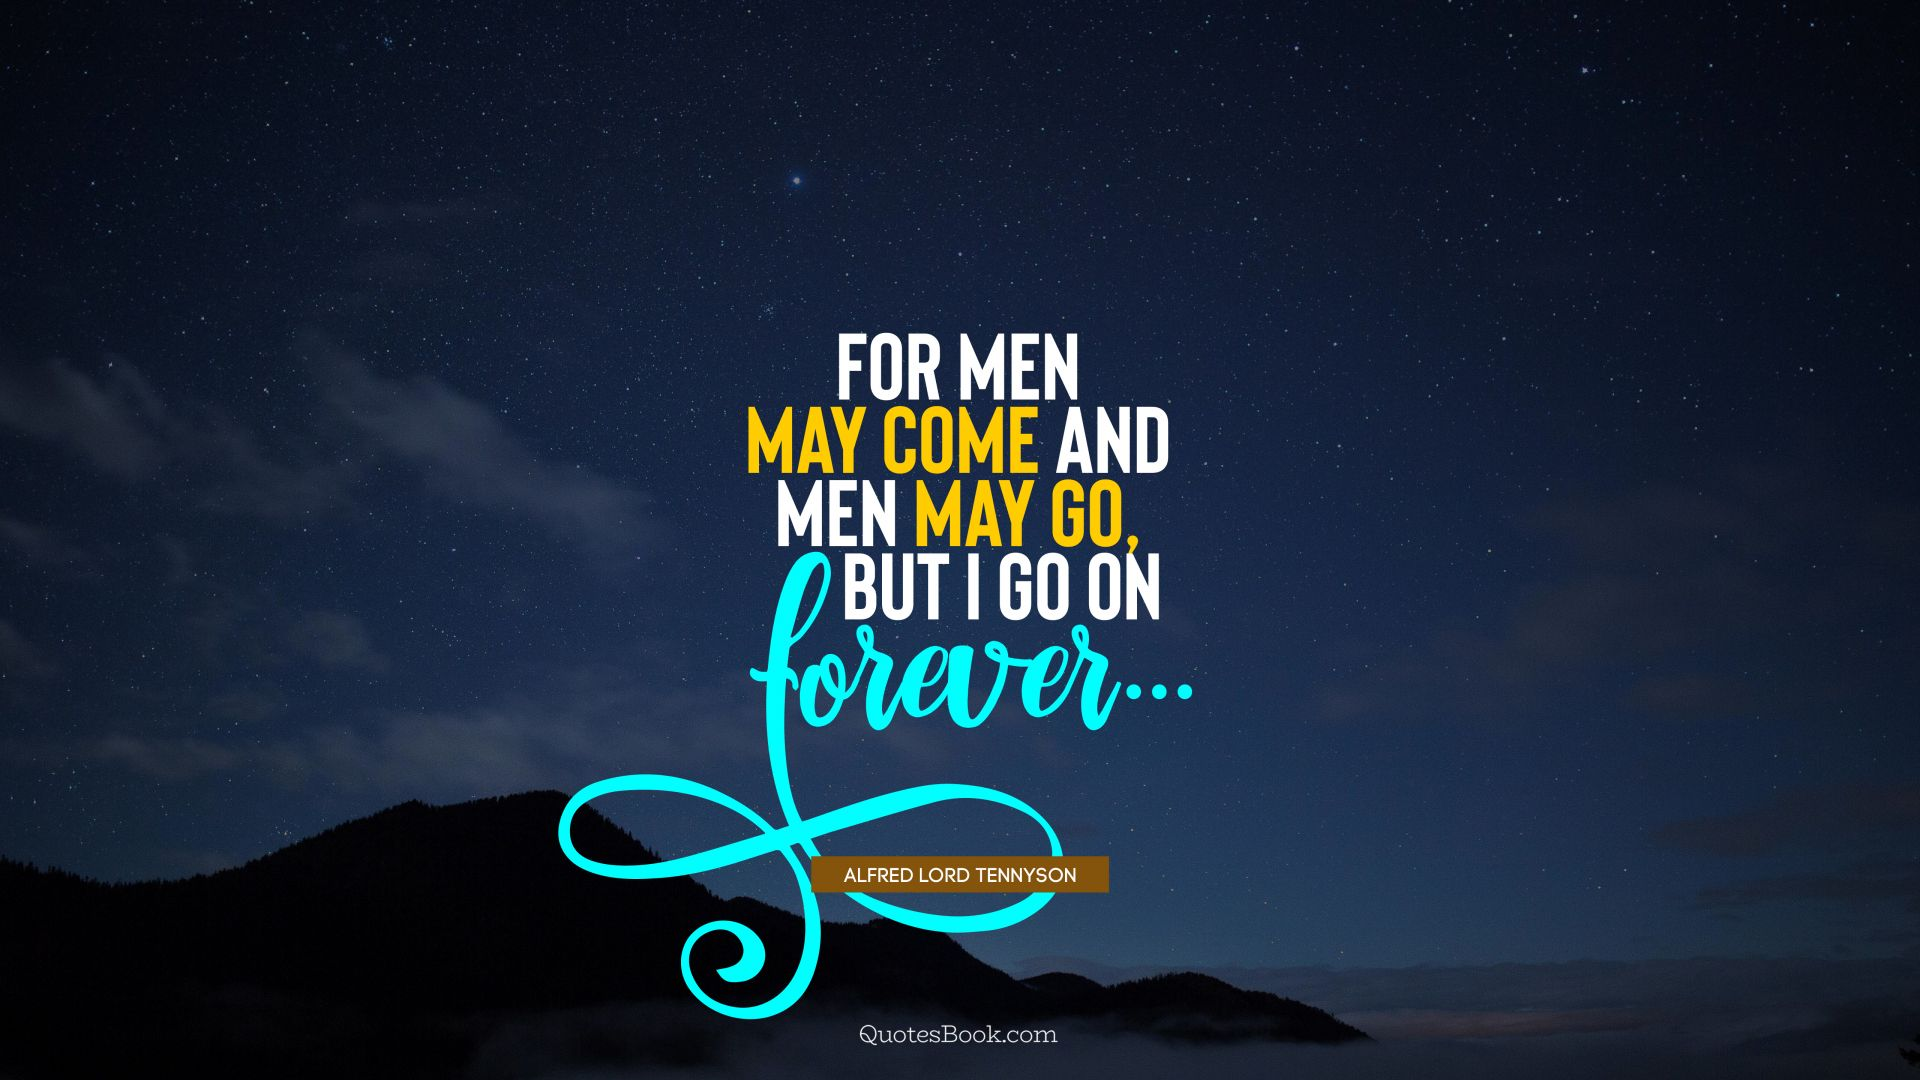 For men may come and men may go, but I go on forever.... - Quote by Alfred Lord Tennyson